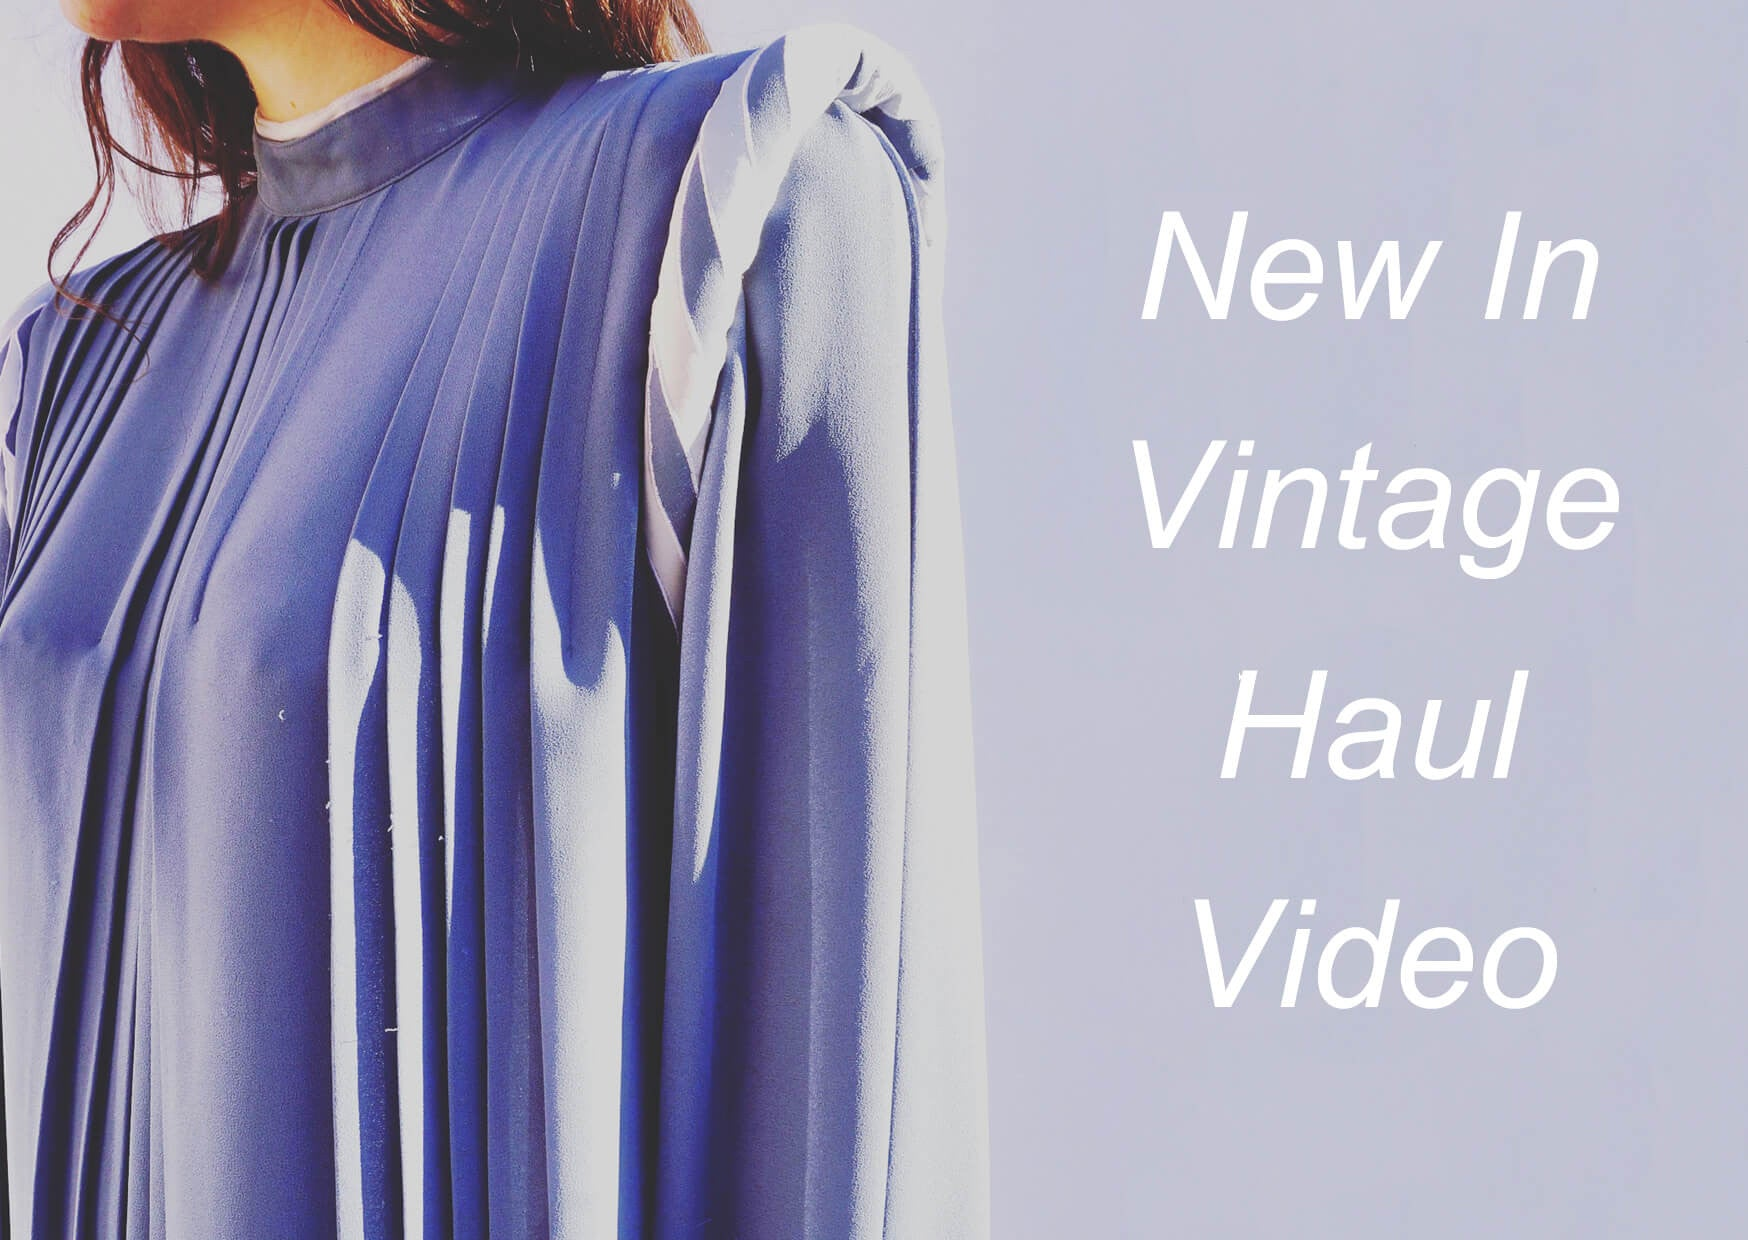 New In Vintage Shopping Haul Video